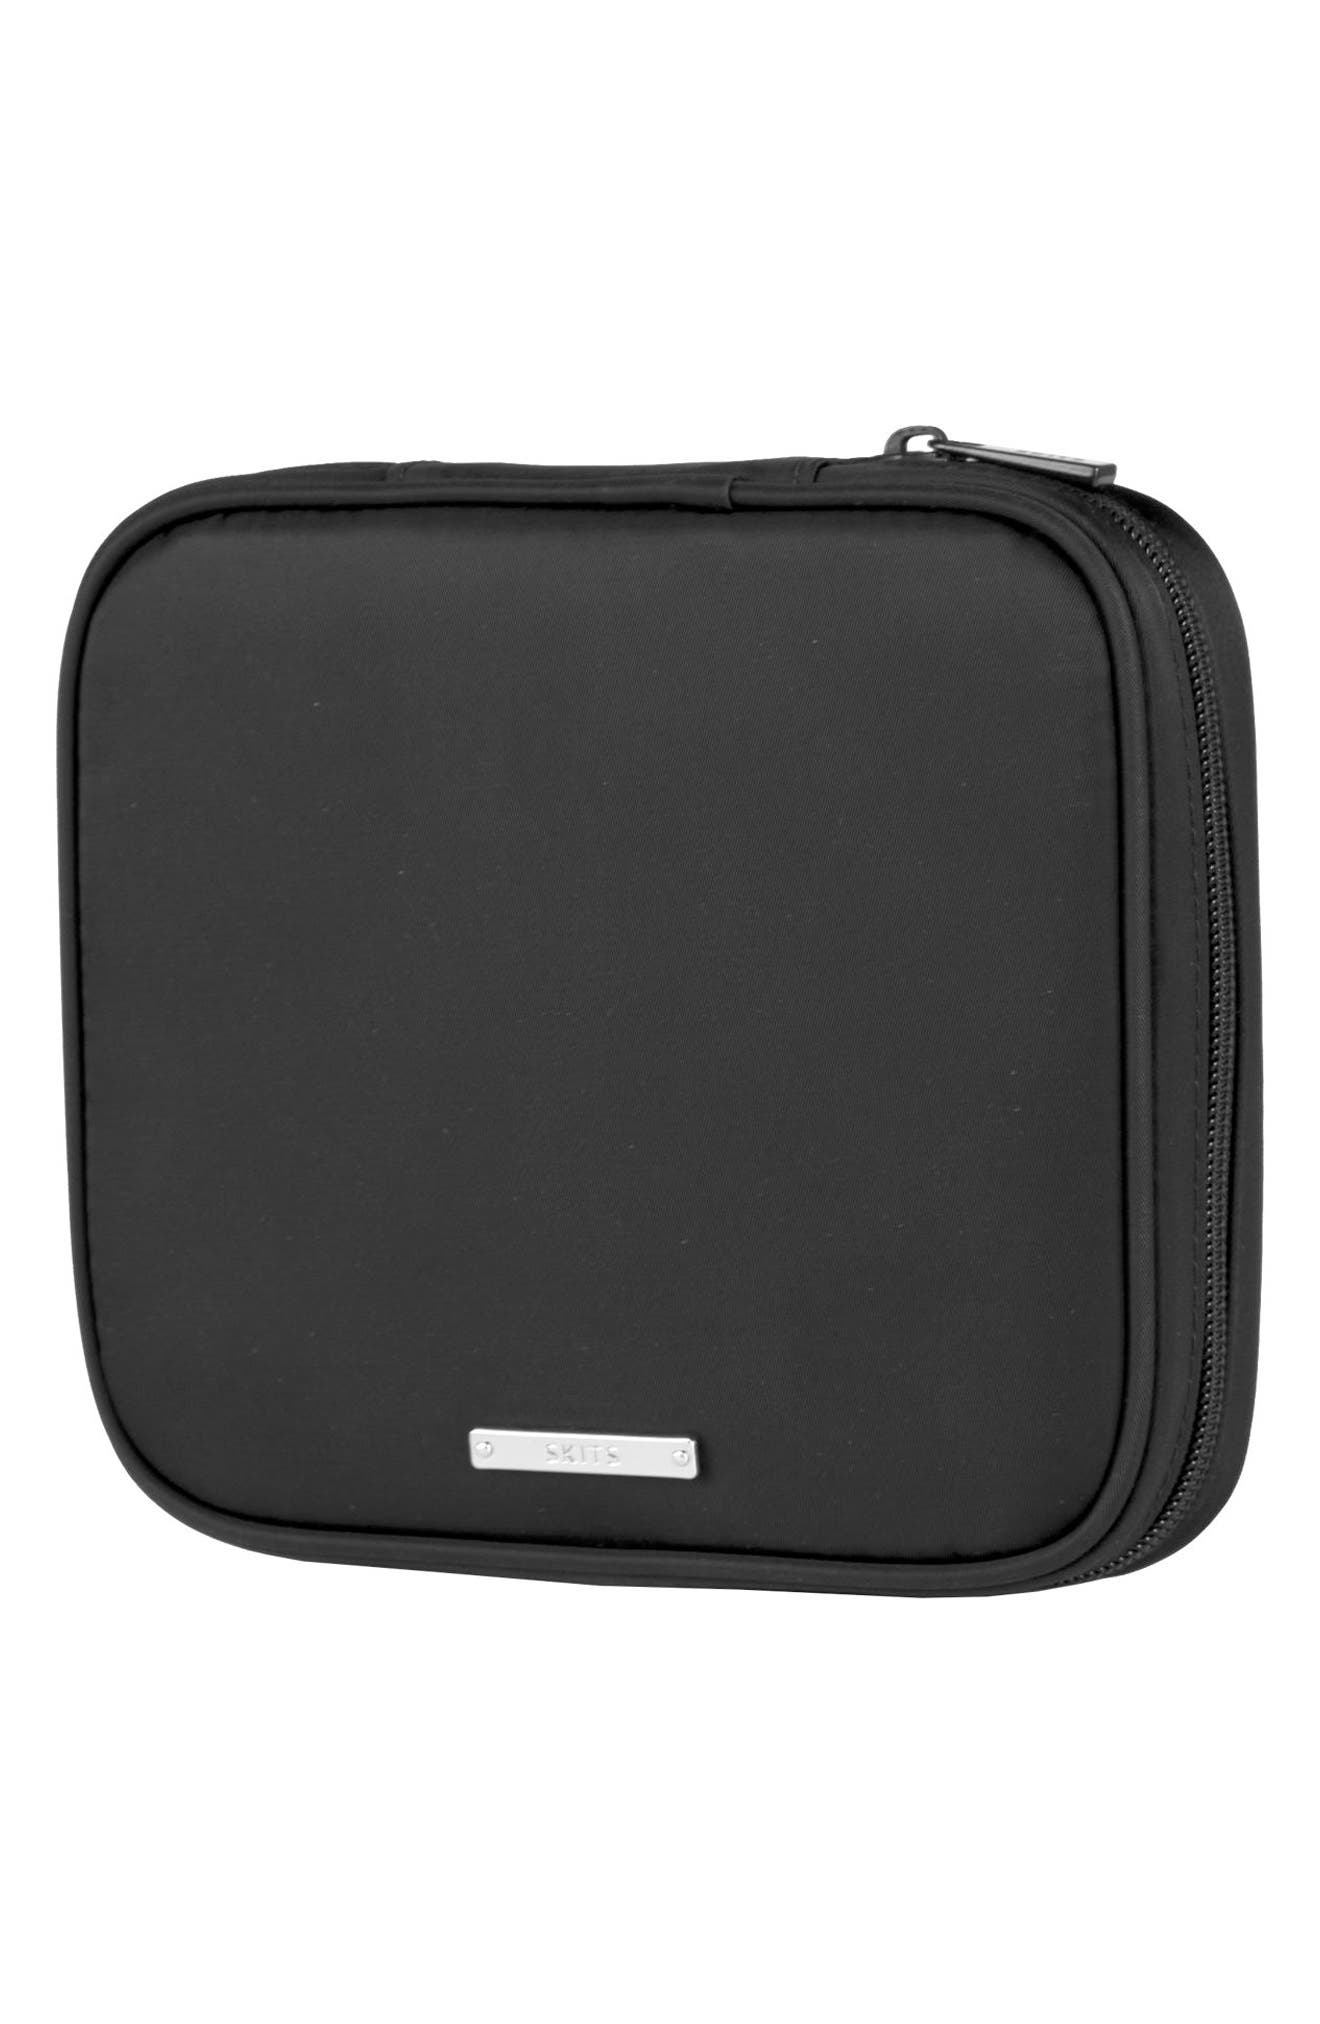 SKITS Oxford Smart Nylon Tech Case